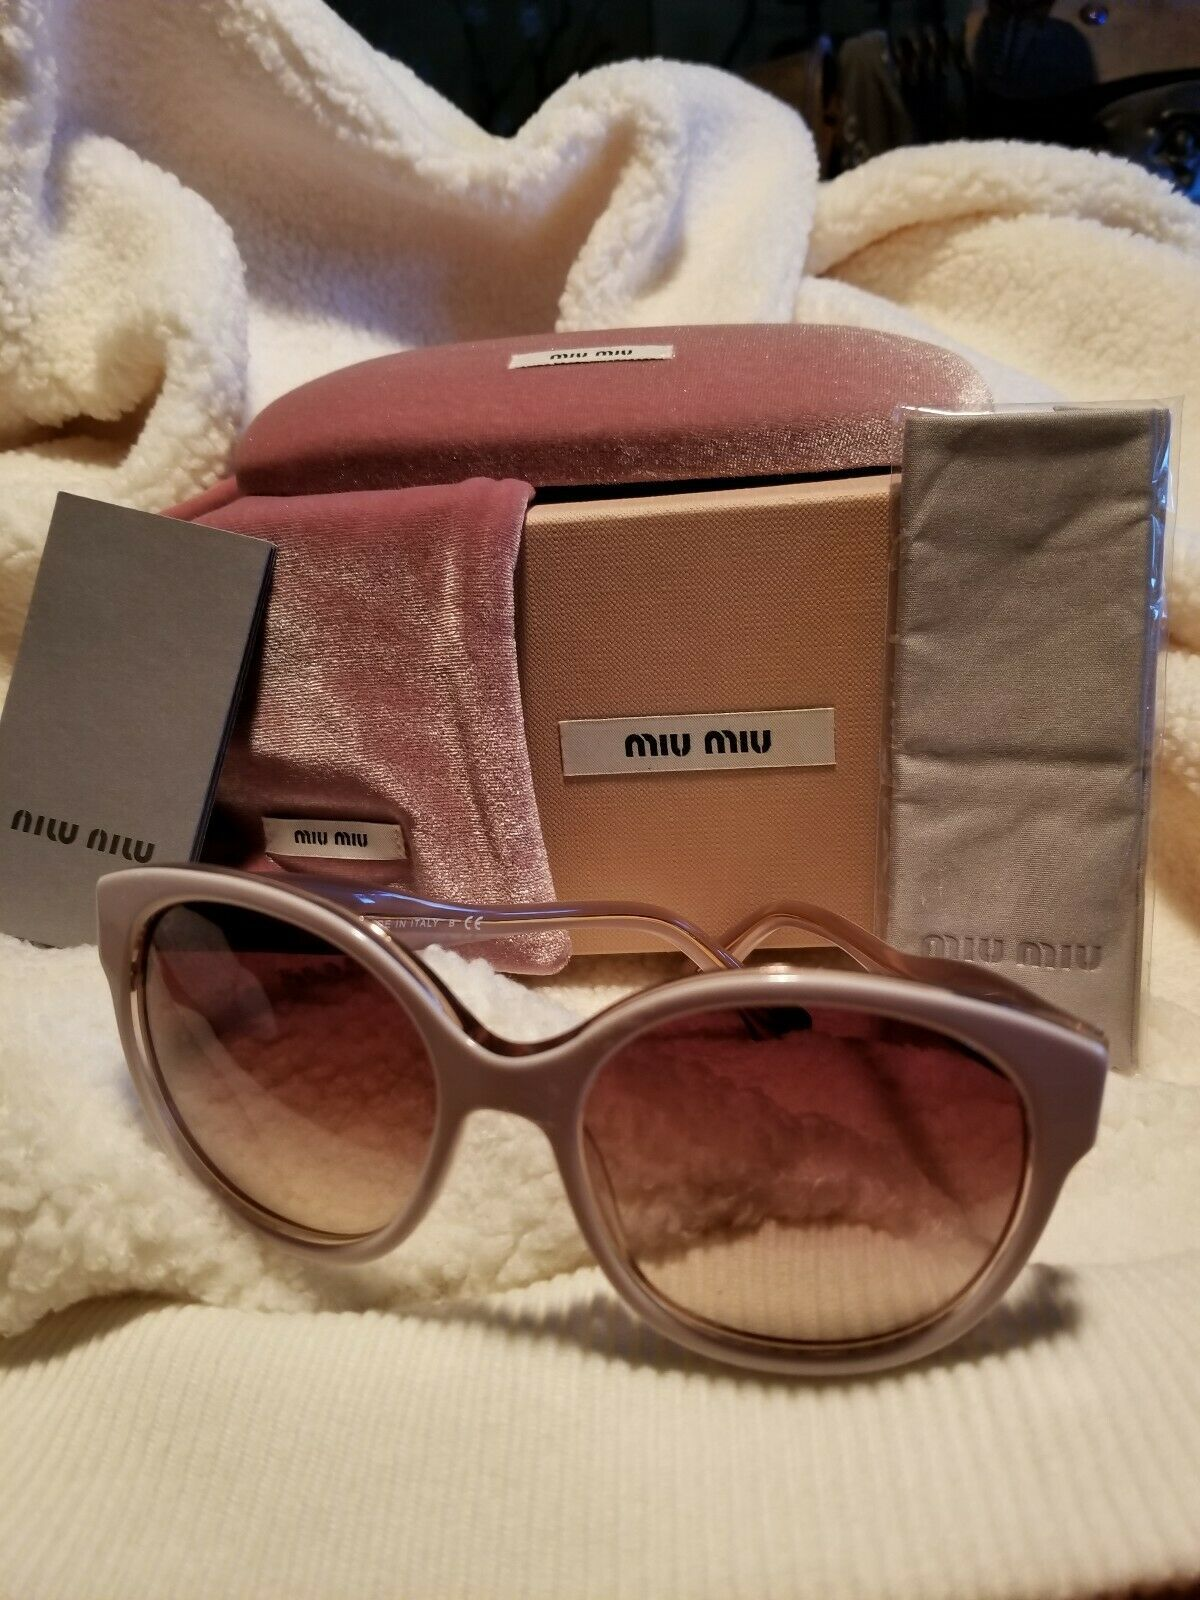 c1e3ef45c42f Miu Miu SMU 03N 56 18 HAF 651 140 3 N and 42 similar items